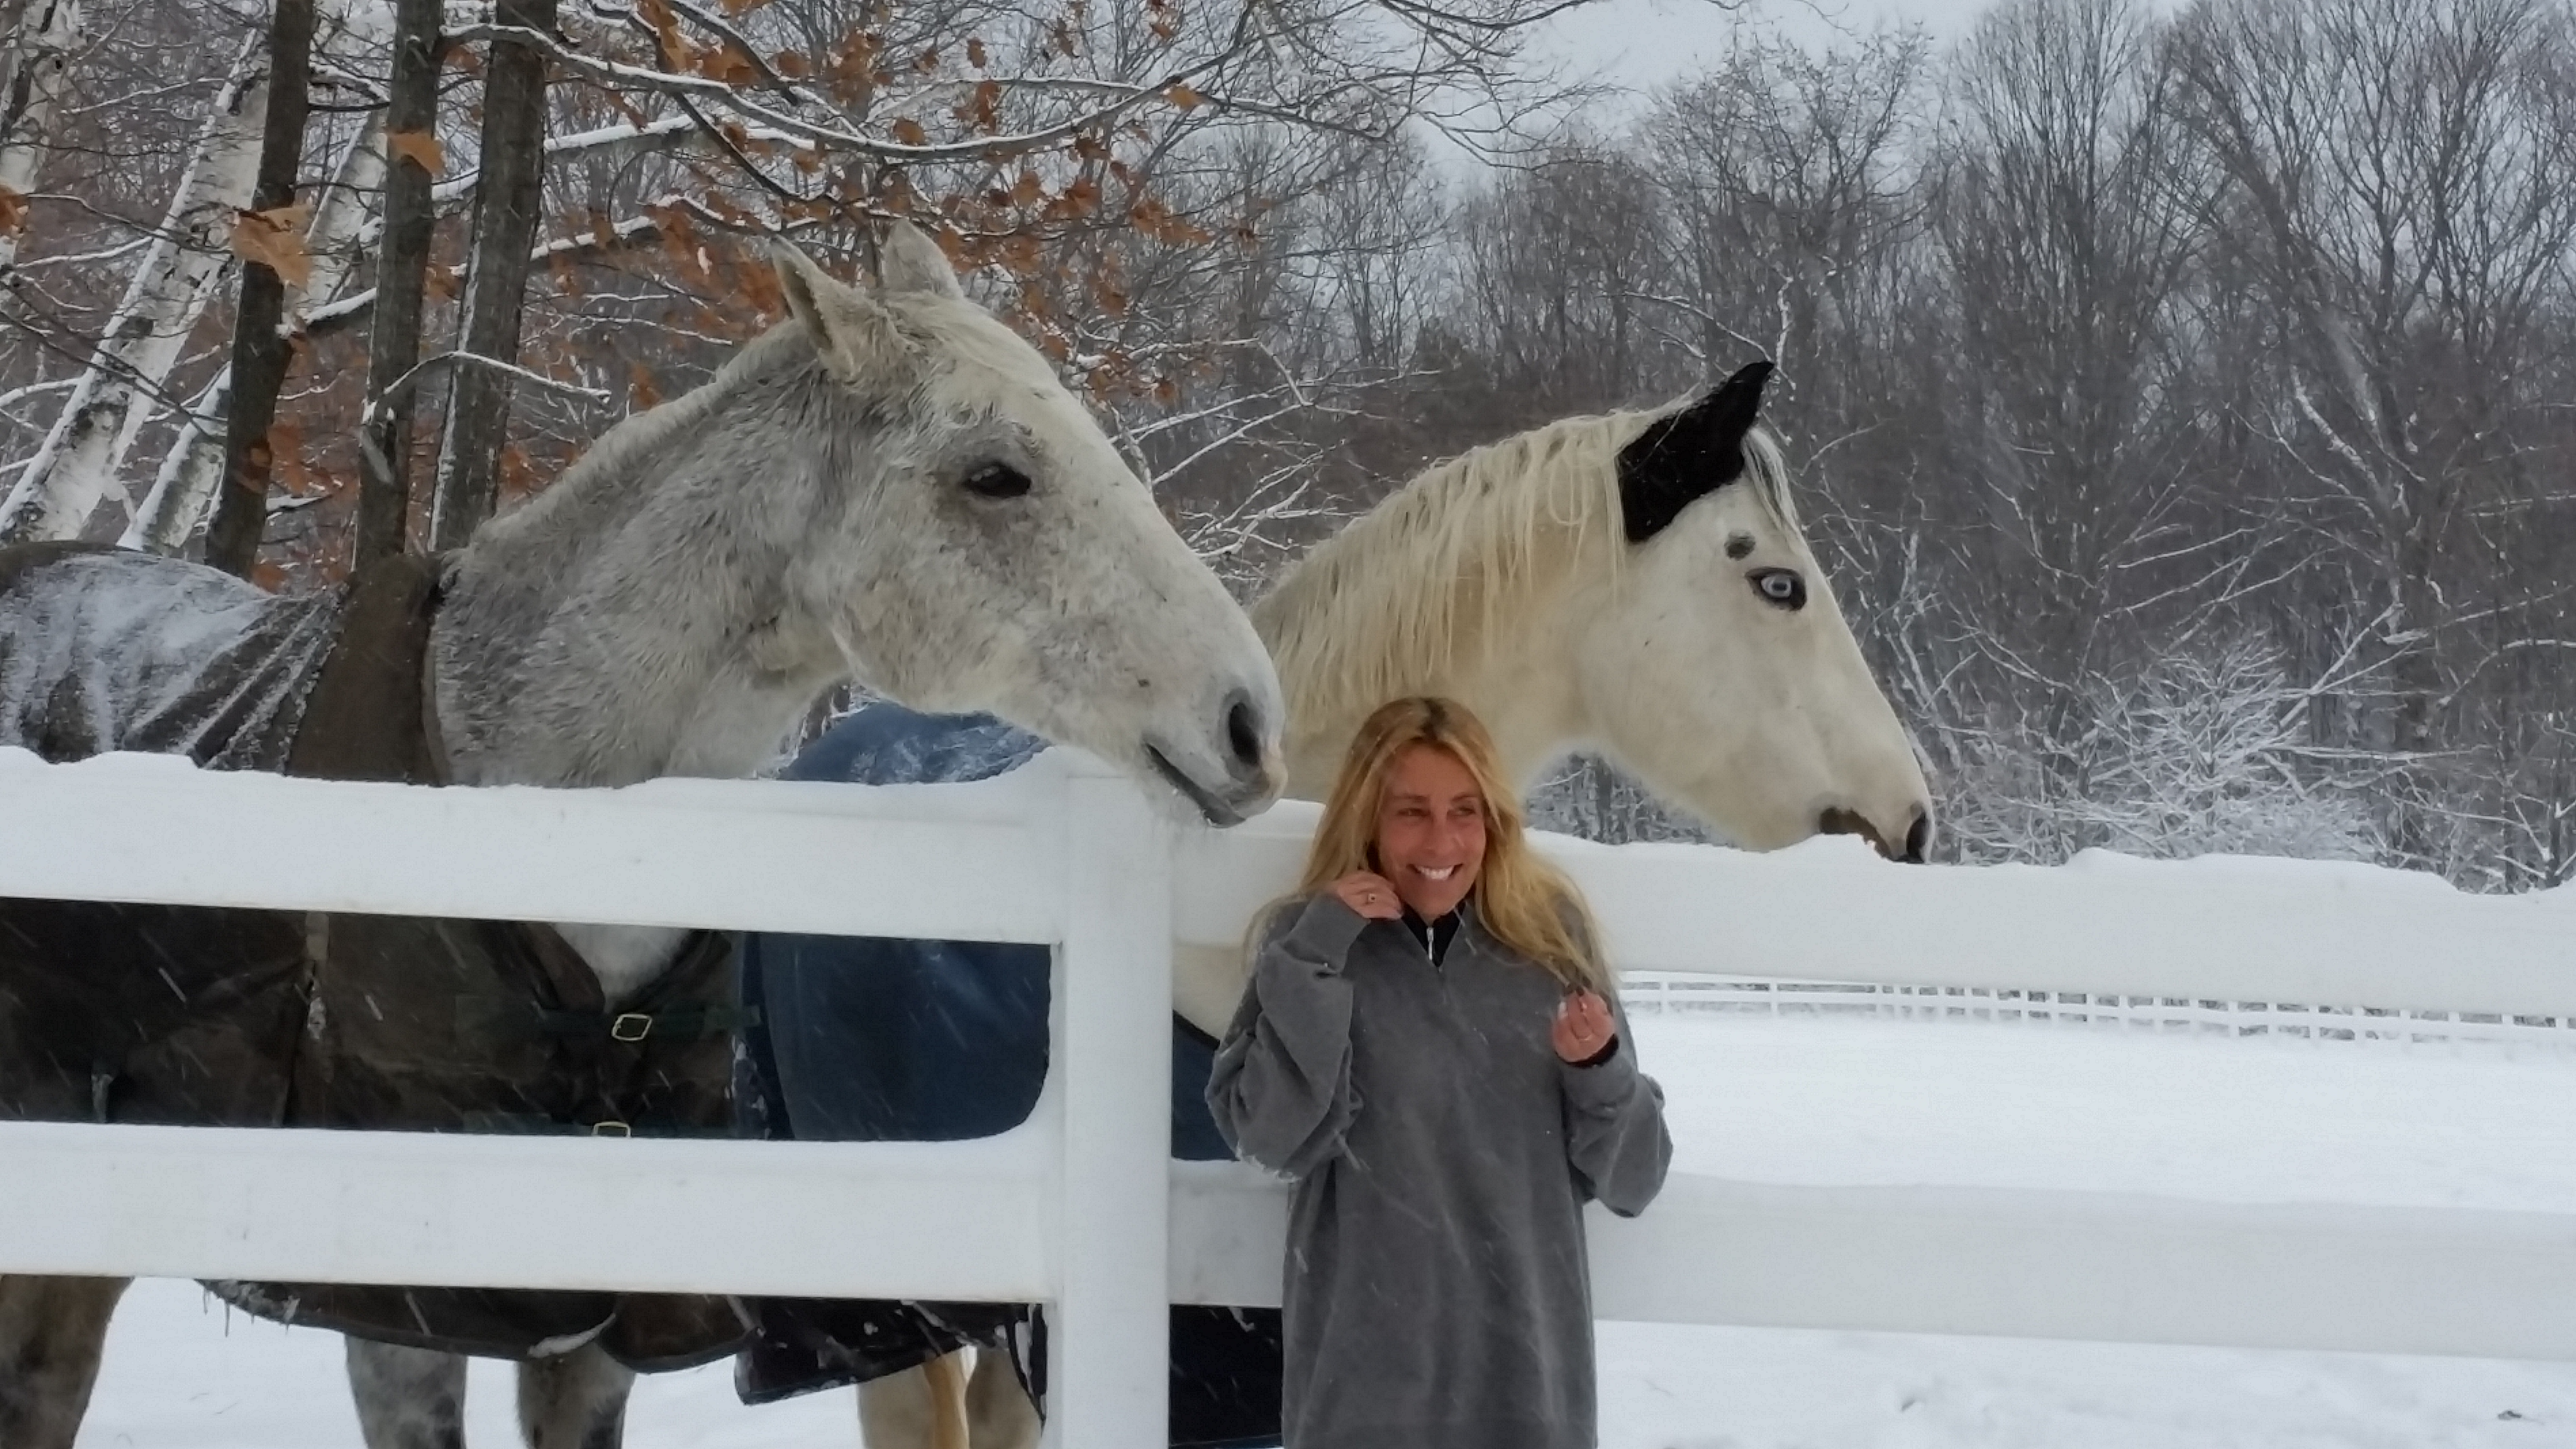 Berkshire HorseWorks' Founder and Executive Director Hayley Sumner